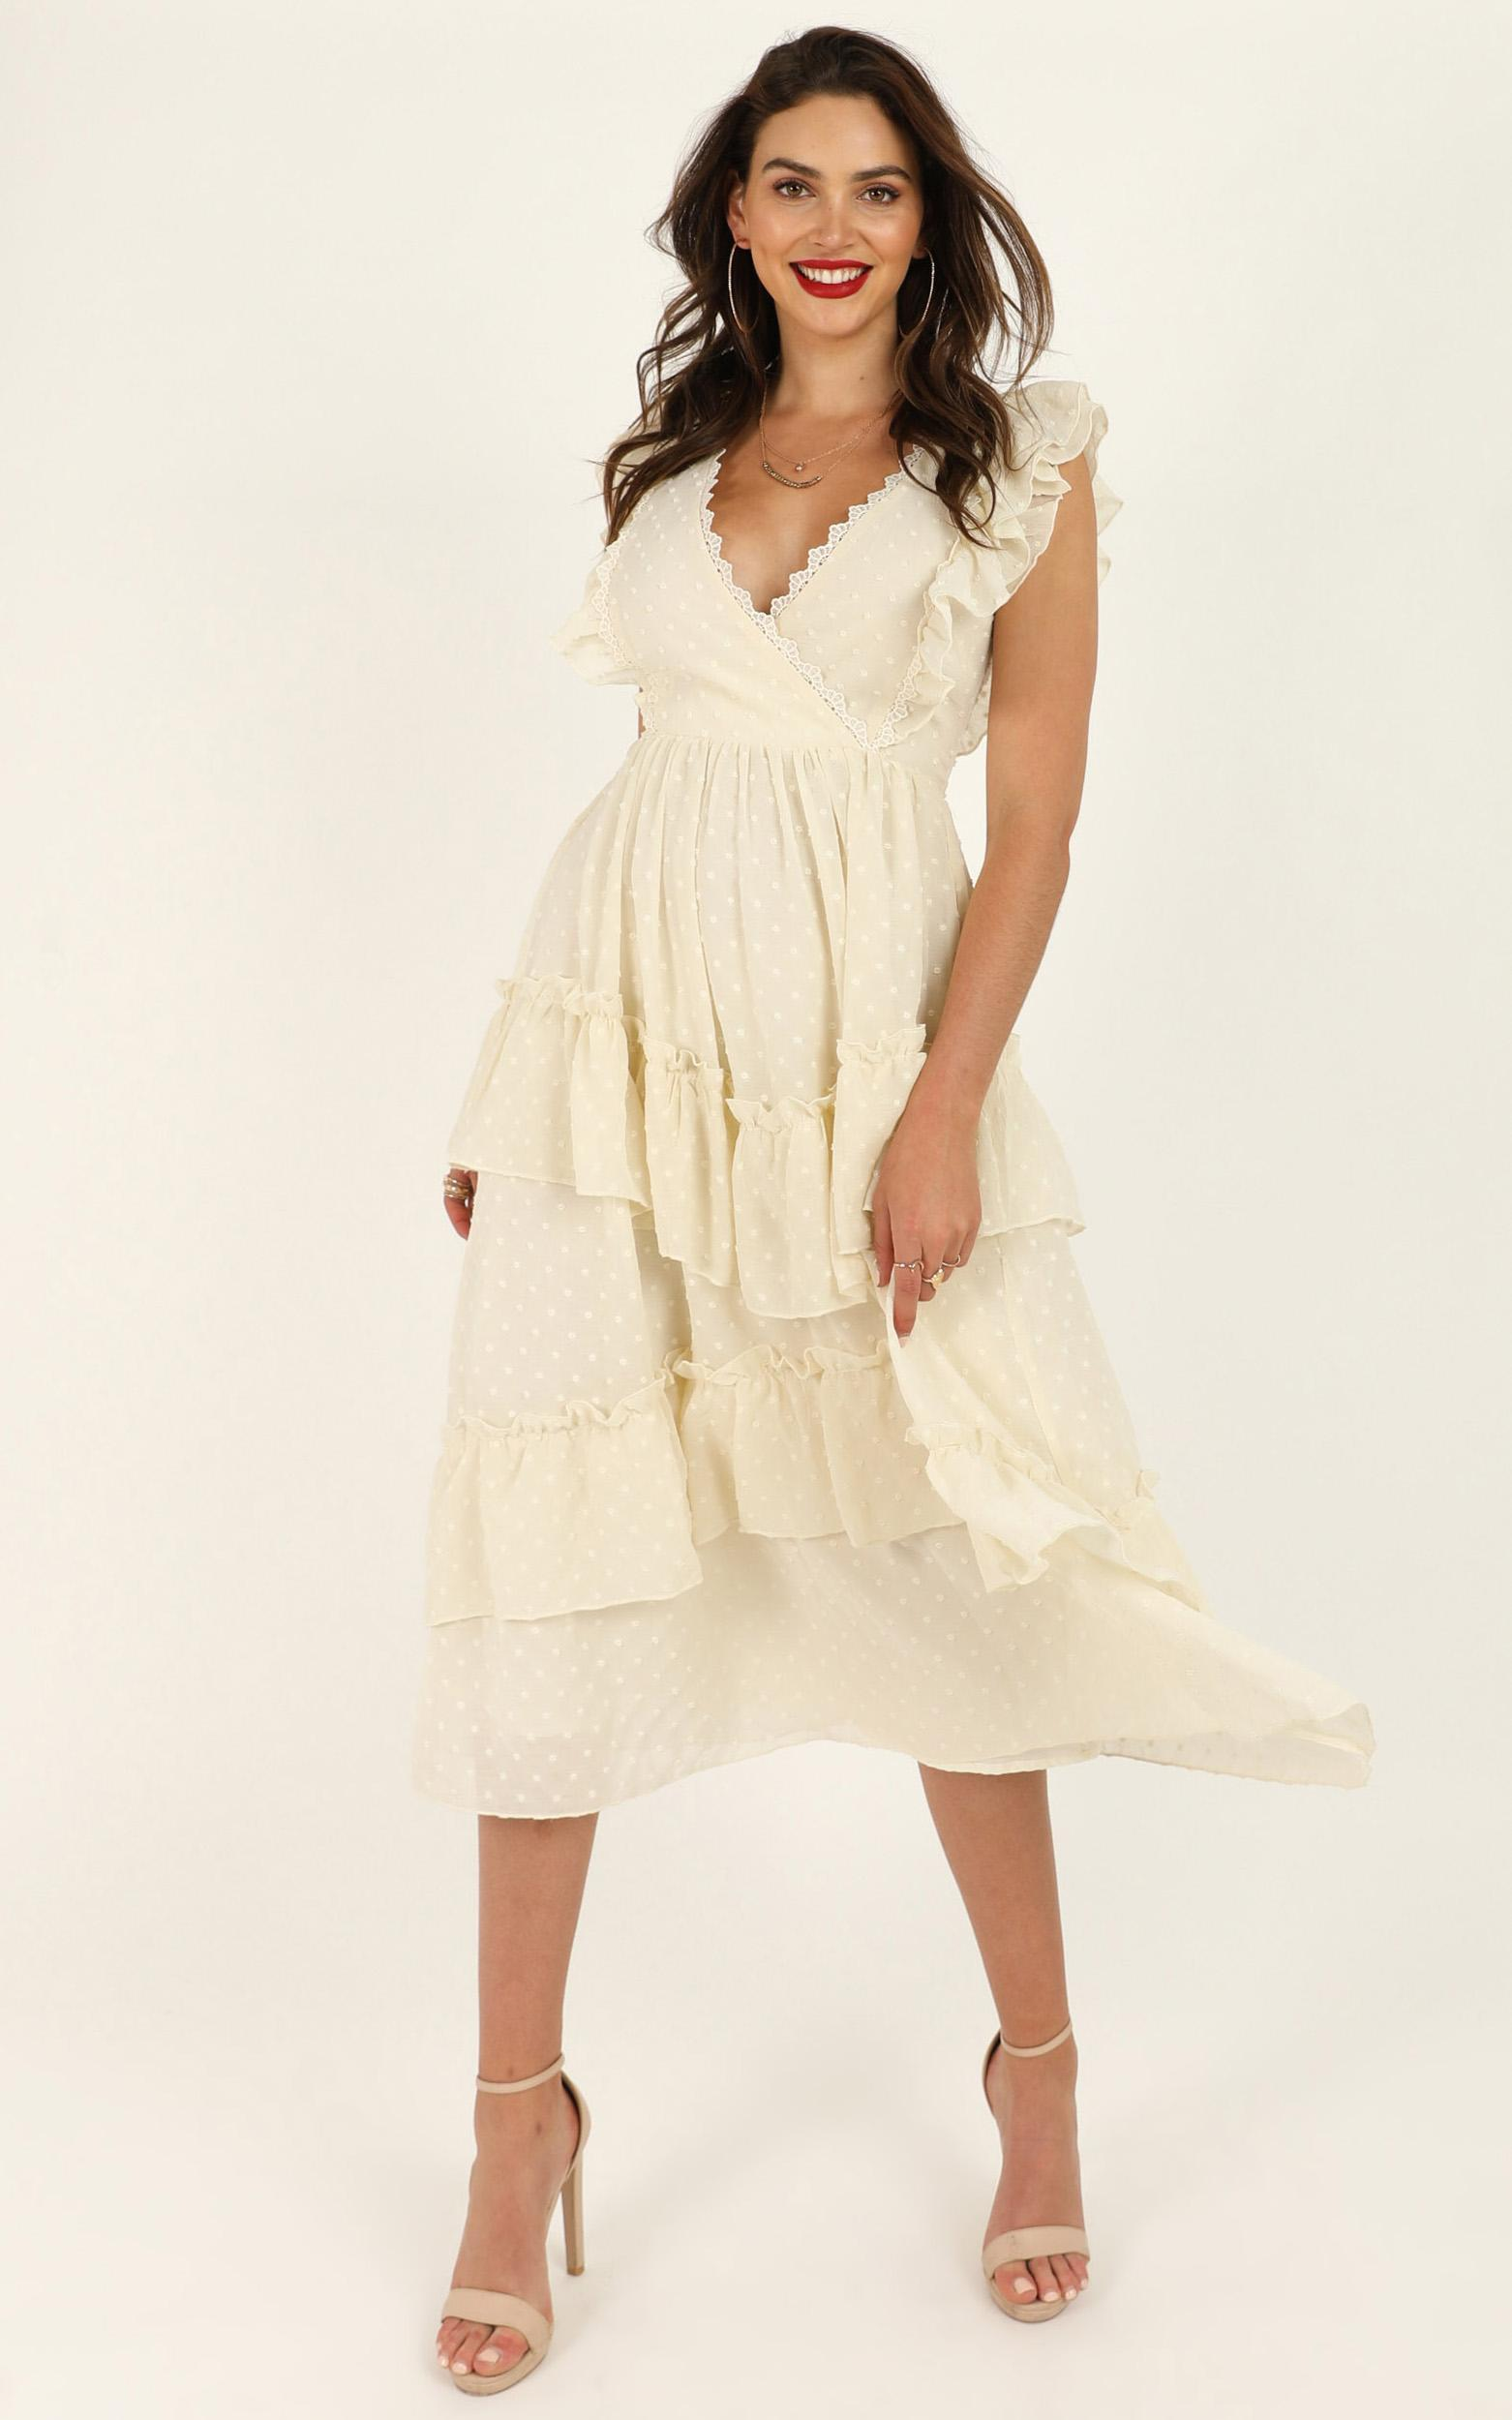 Brighter Flame dress in cream - 12 (L), Cream, hi-res image number null